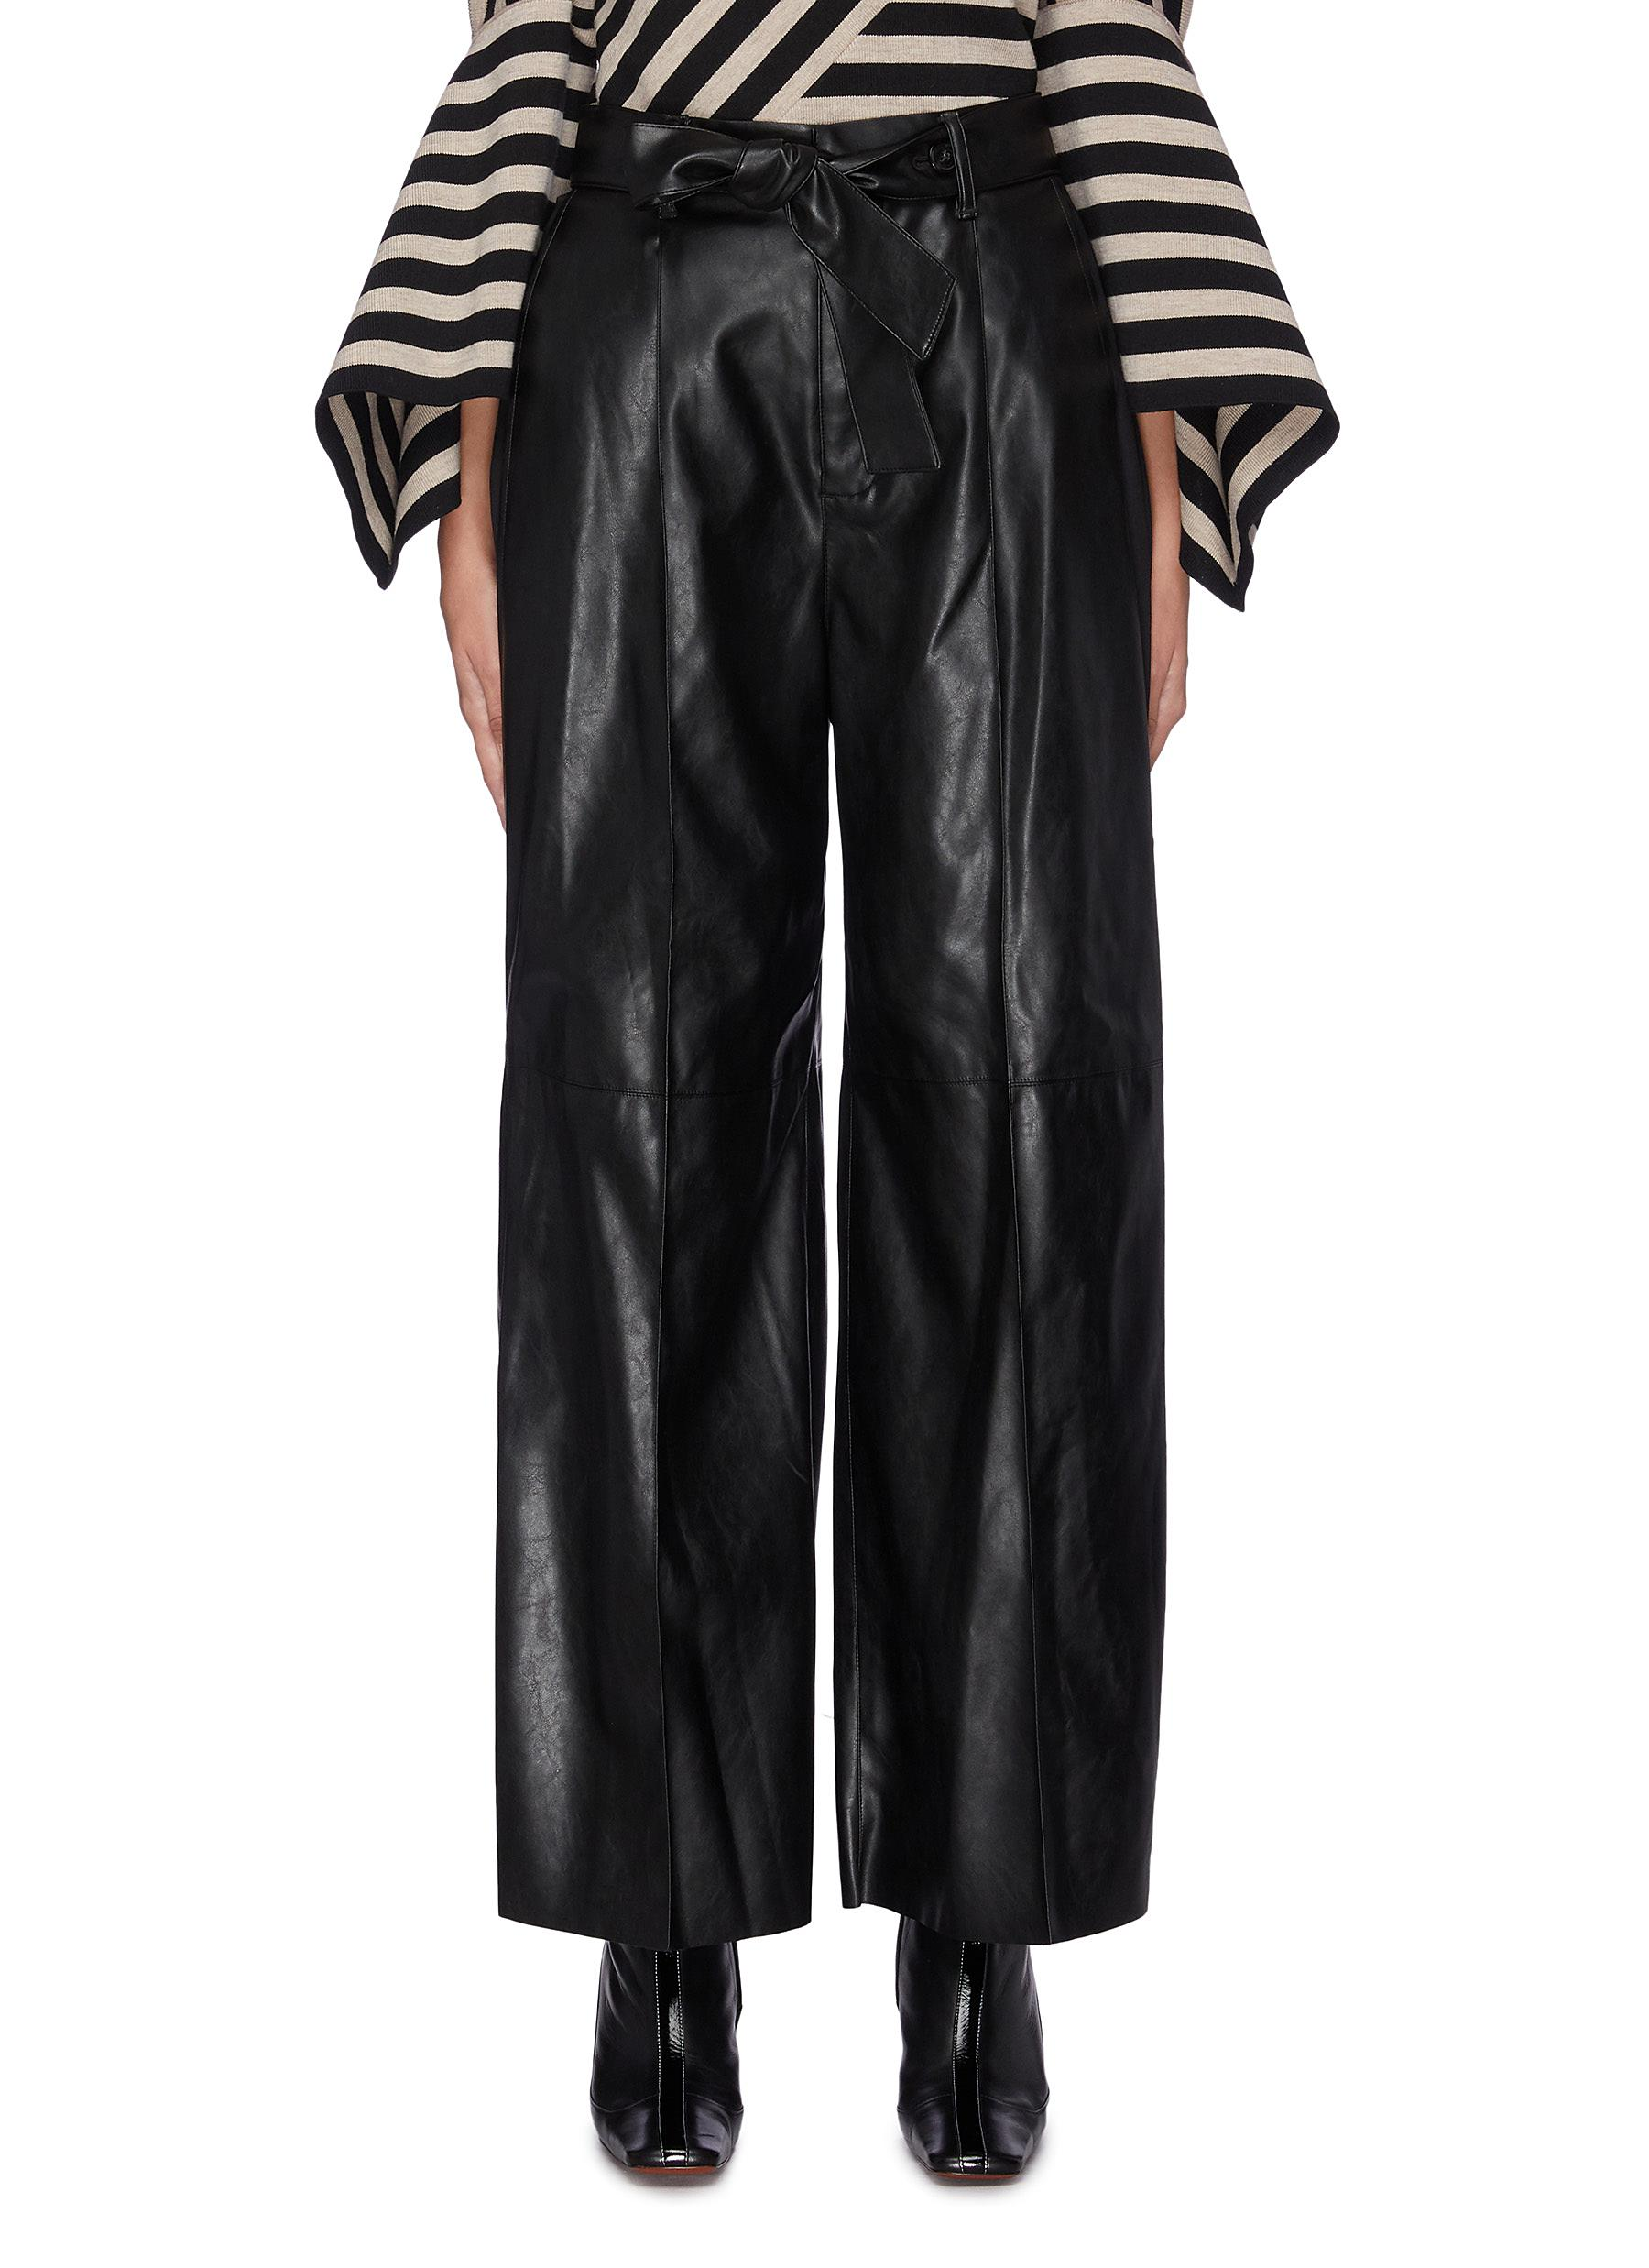 Sash belted leather wide leg pants by Akira Naka